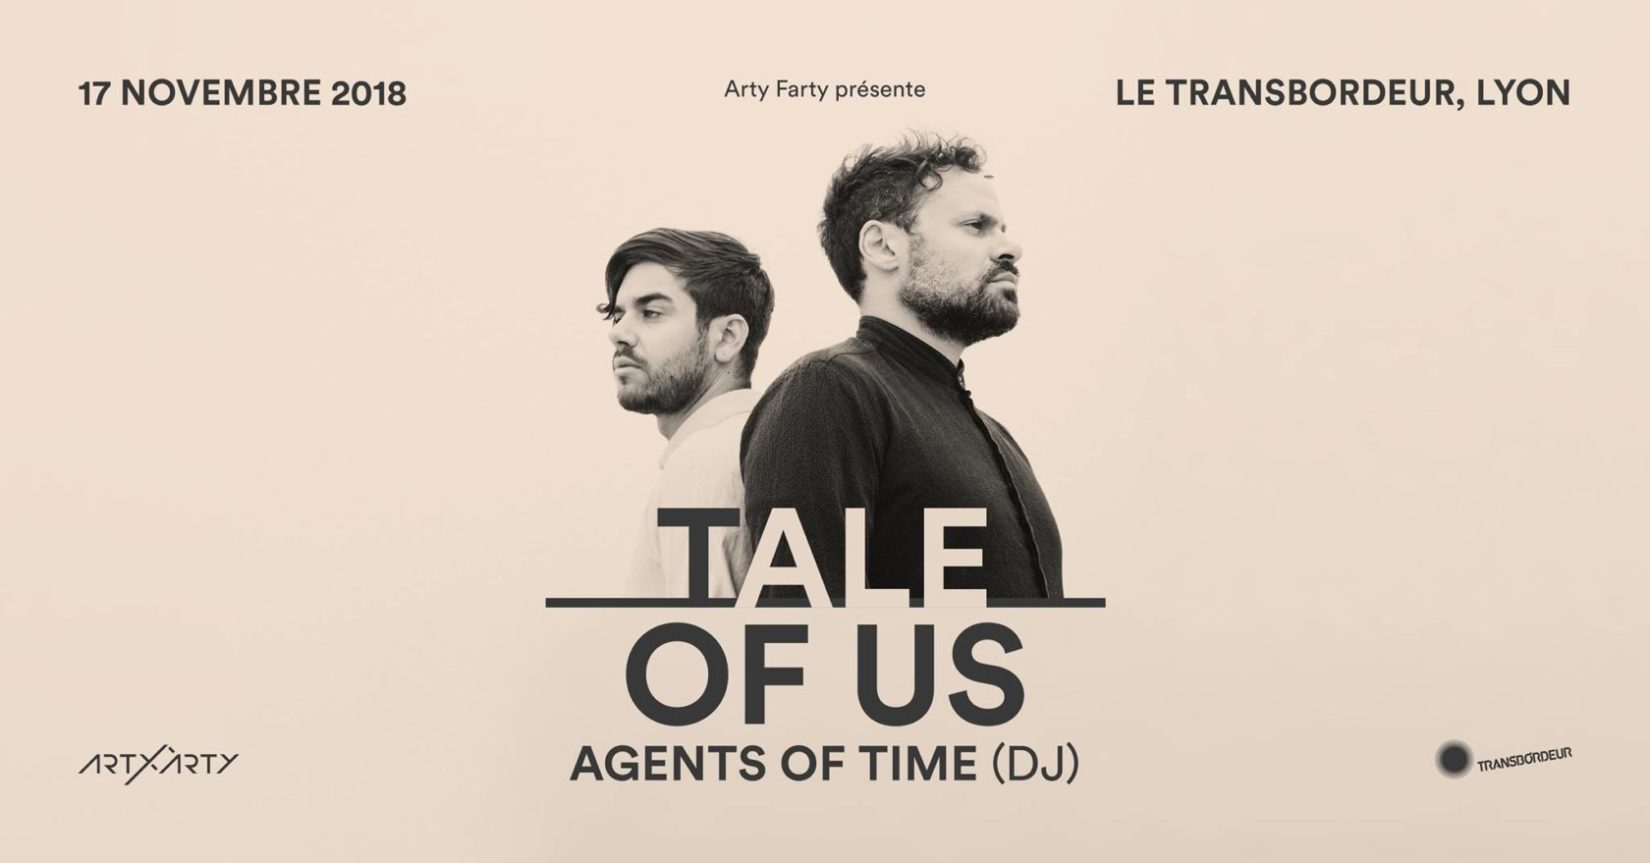 Tale Of Us + Agents Of Time (dj) - Transbordeur - Lyon